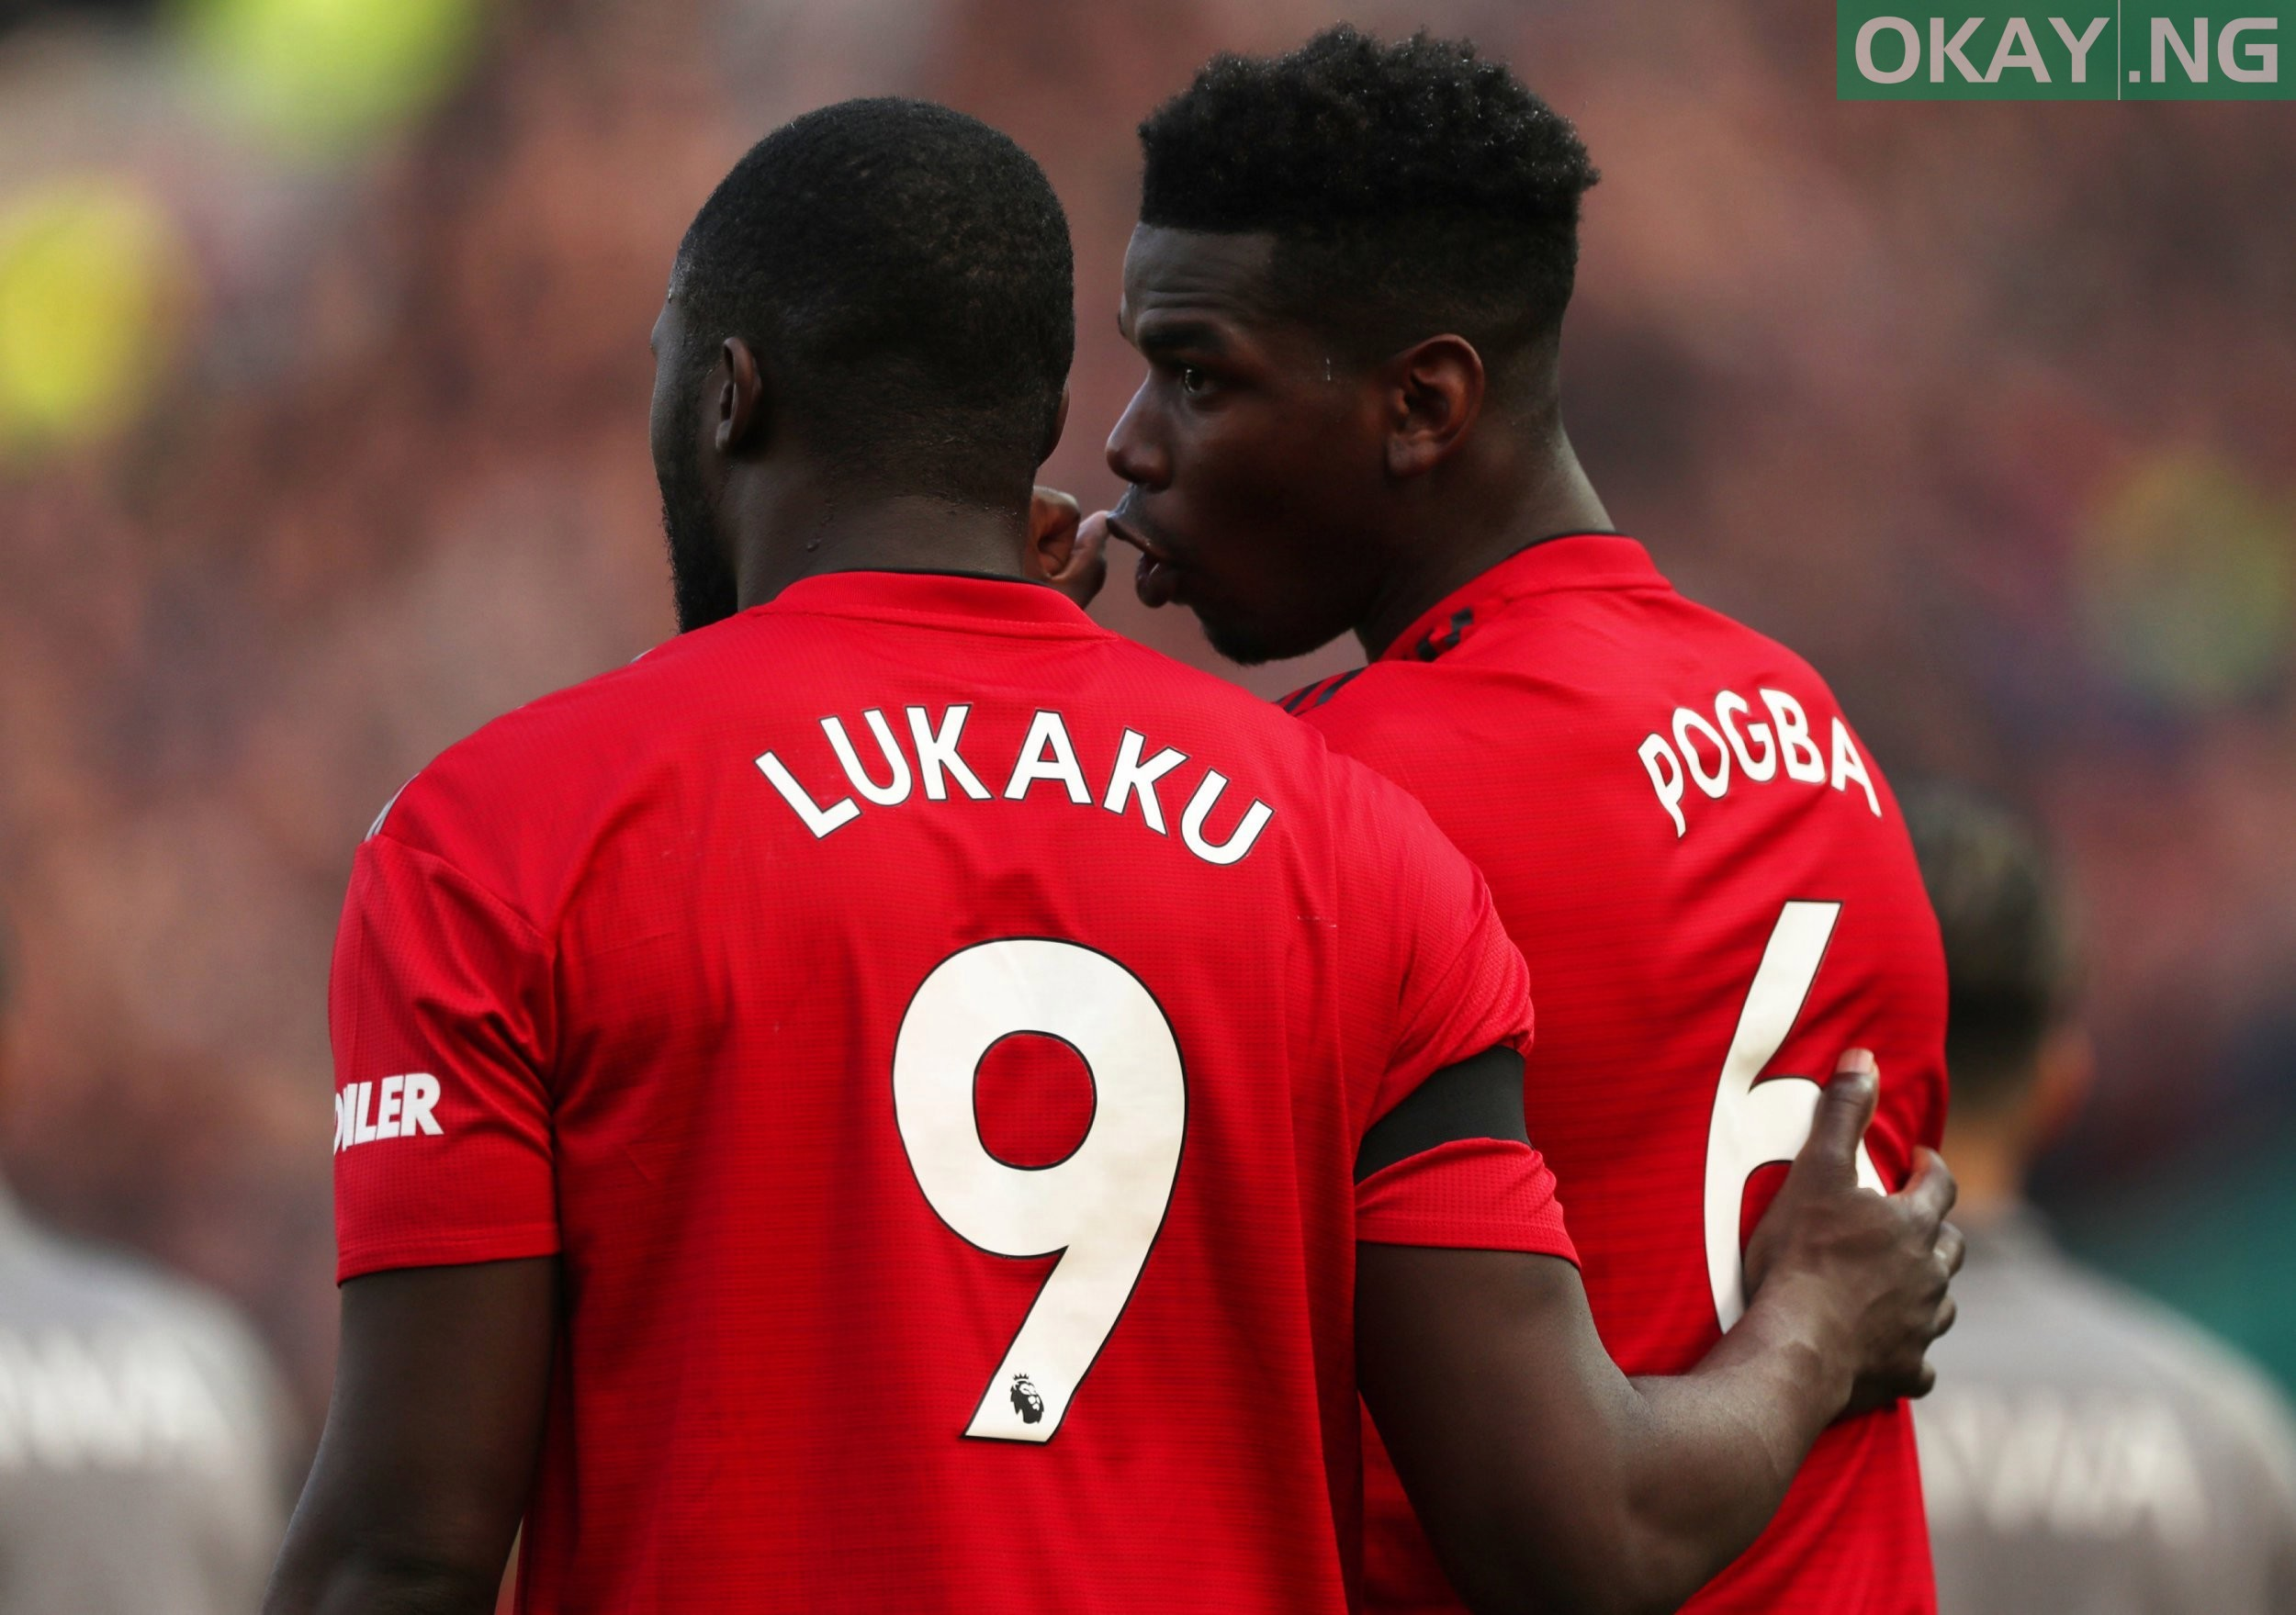 Pogba and Lukaku